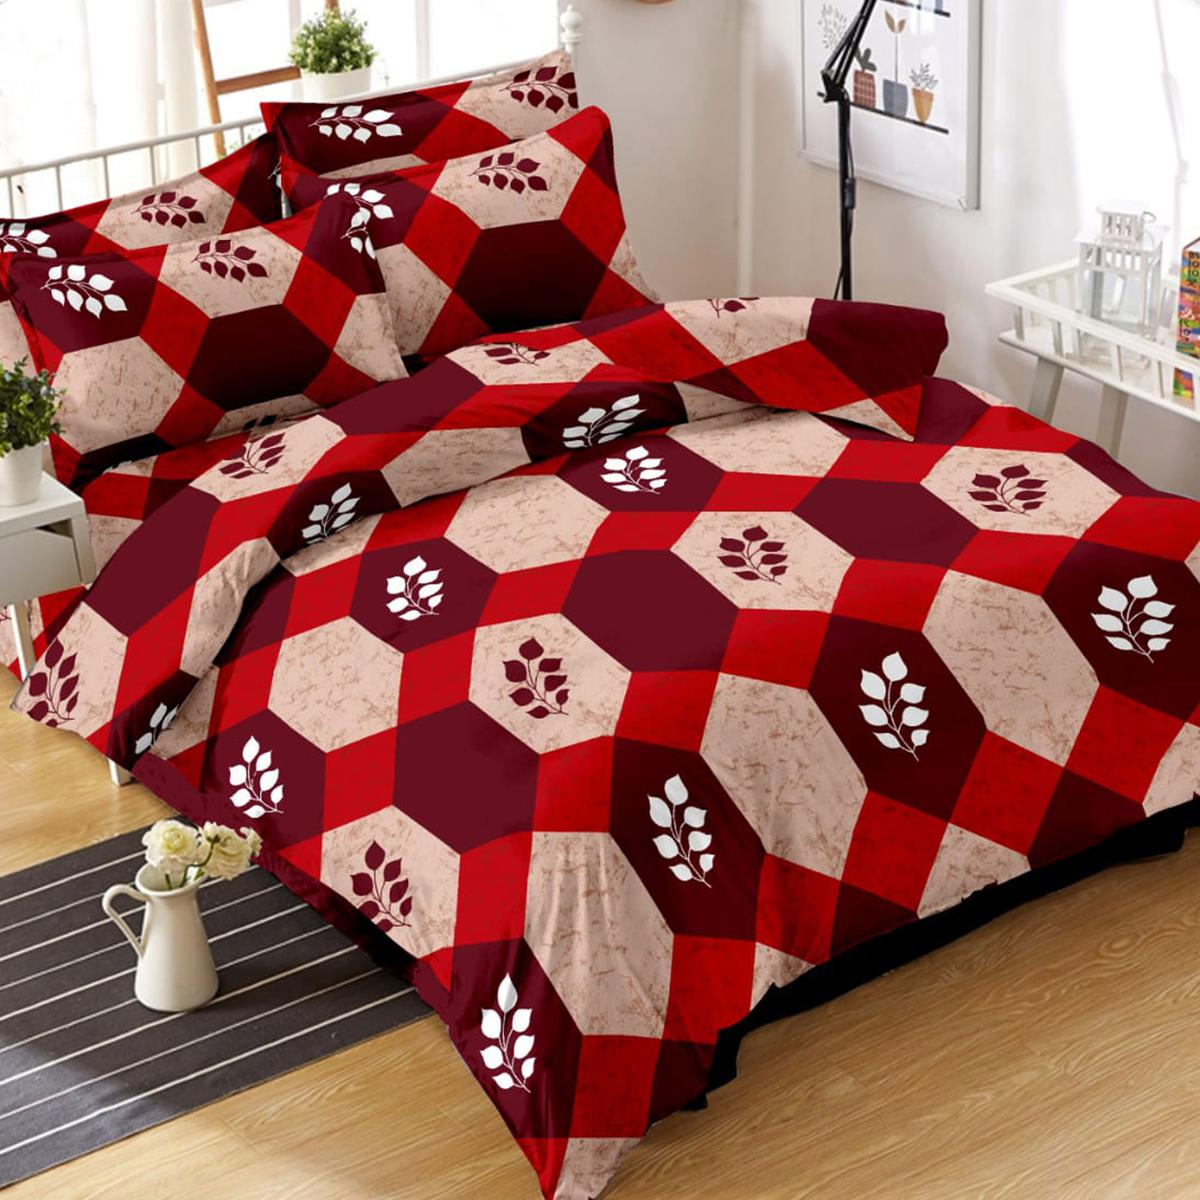 Delightful Red-Beige Colored Geometric Printed Cotton Double Bedsheet With Pillow Cover